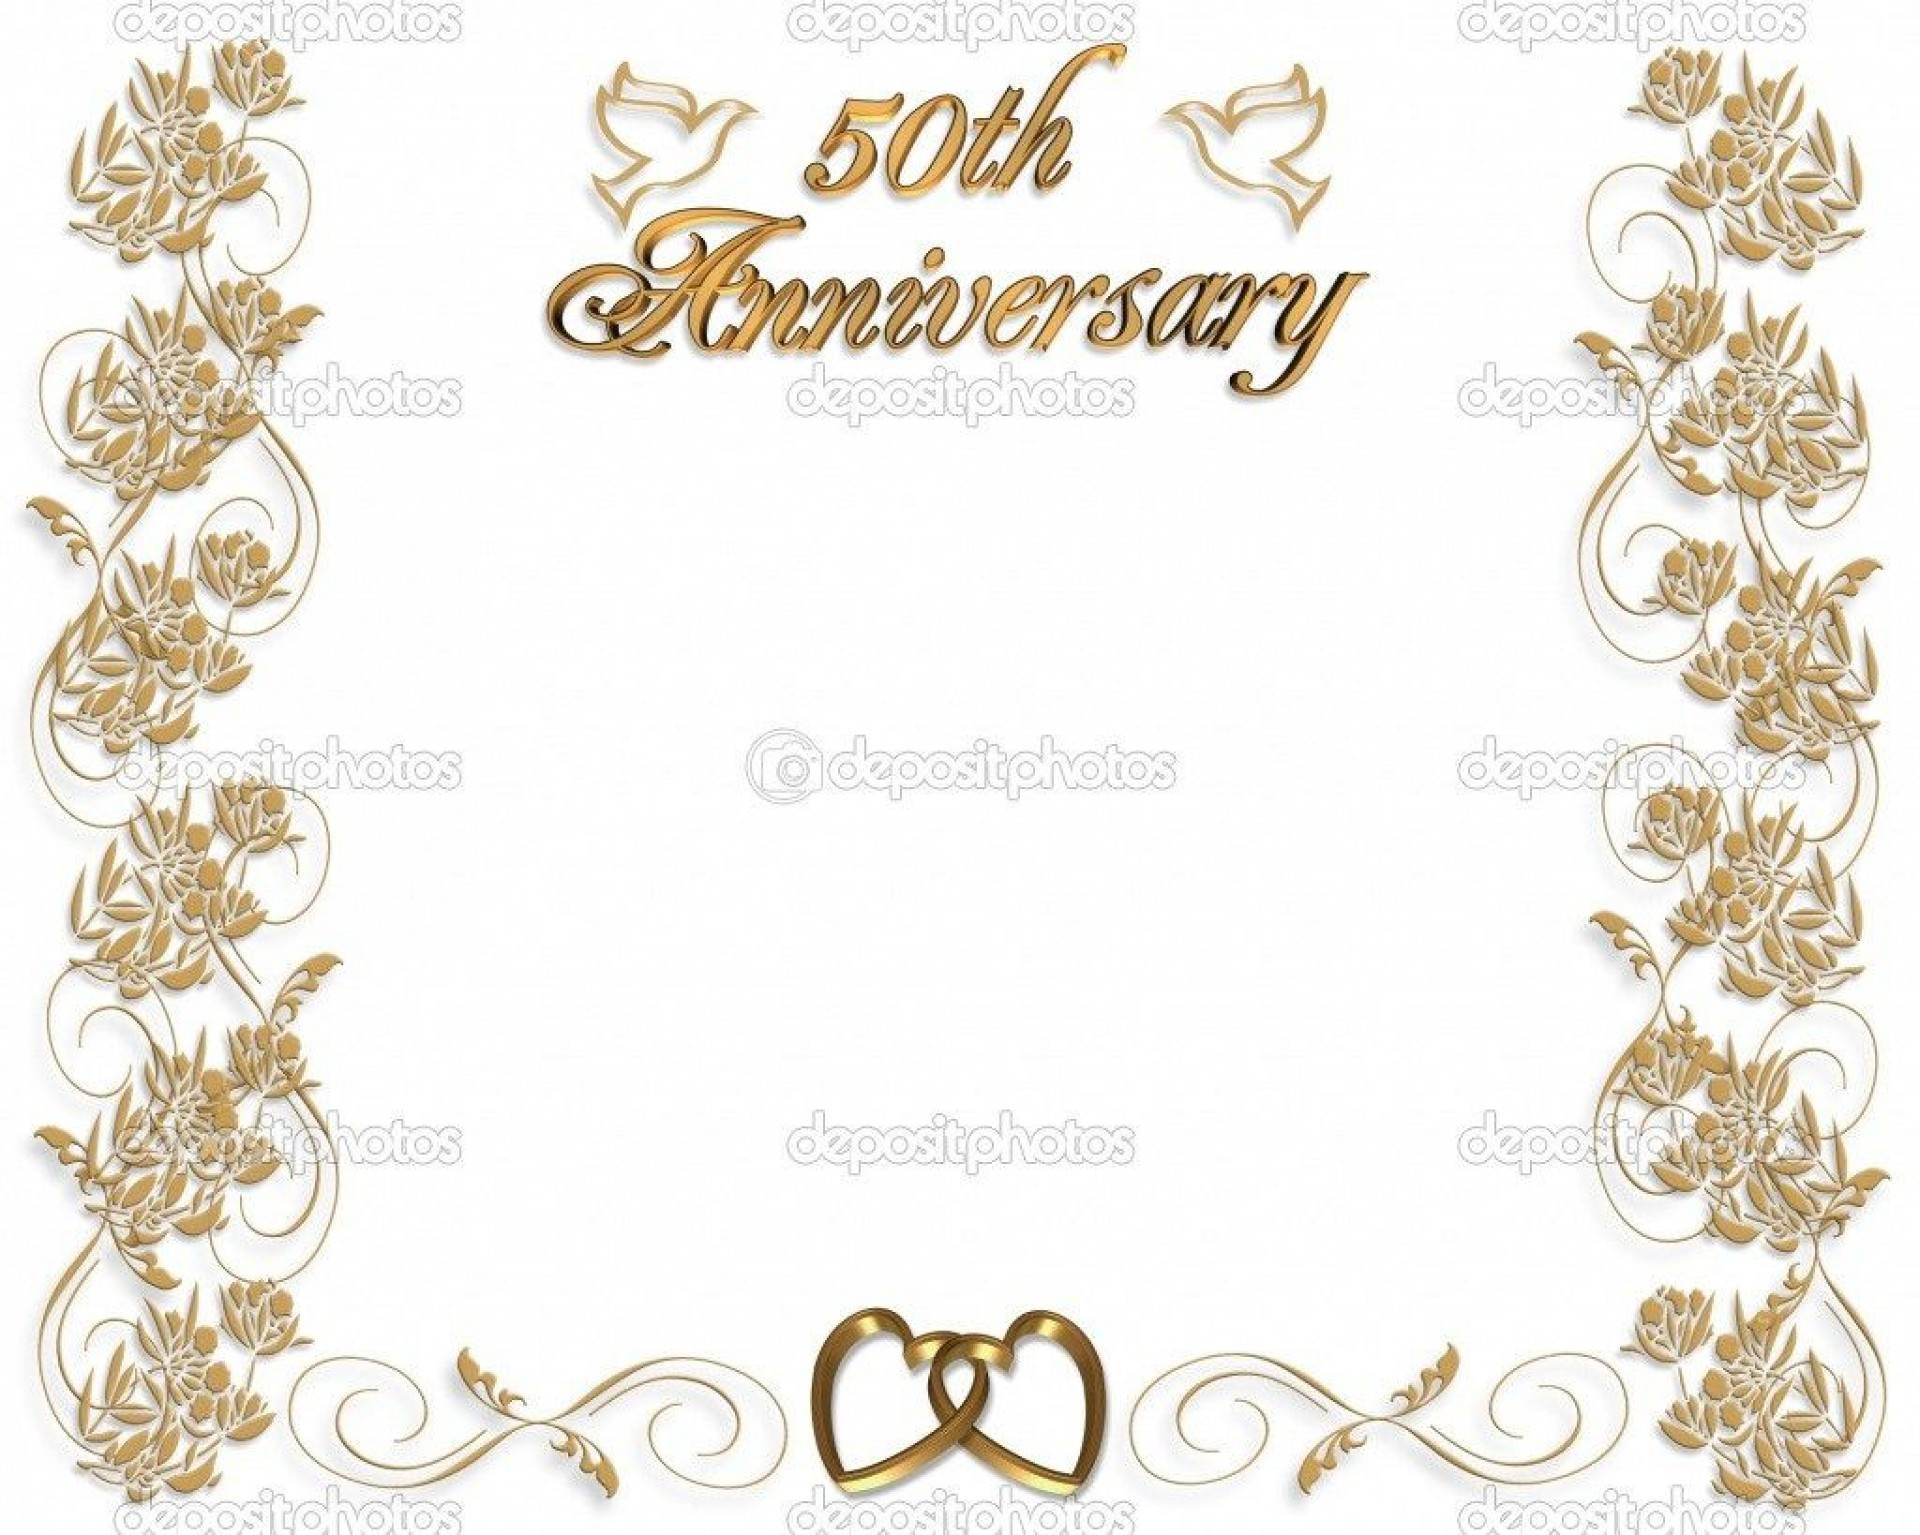 004 Staggering 50th Anniversary Invitation Template Free Download High Def  Golden Wedding1920